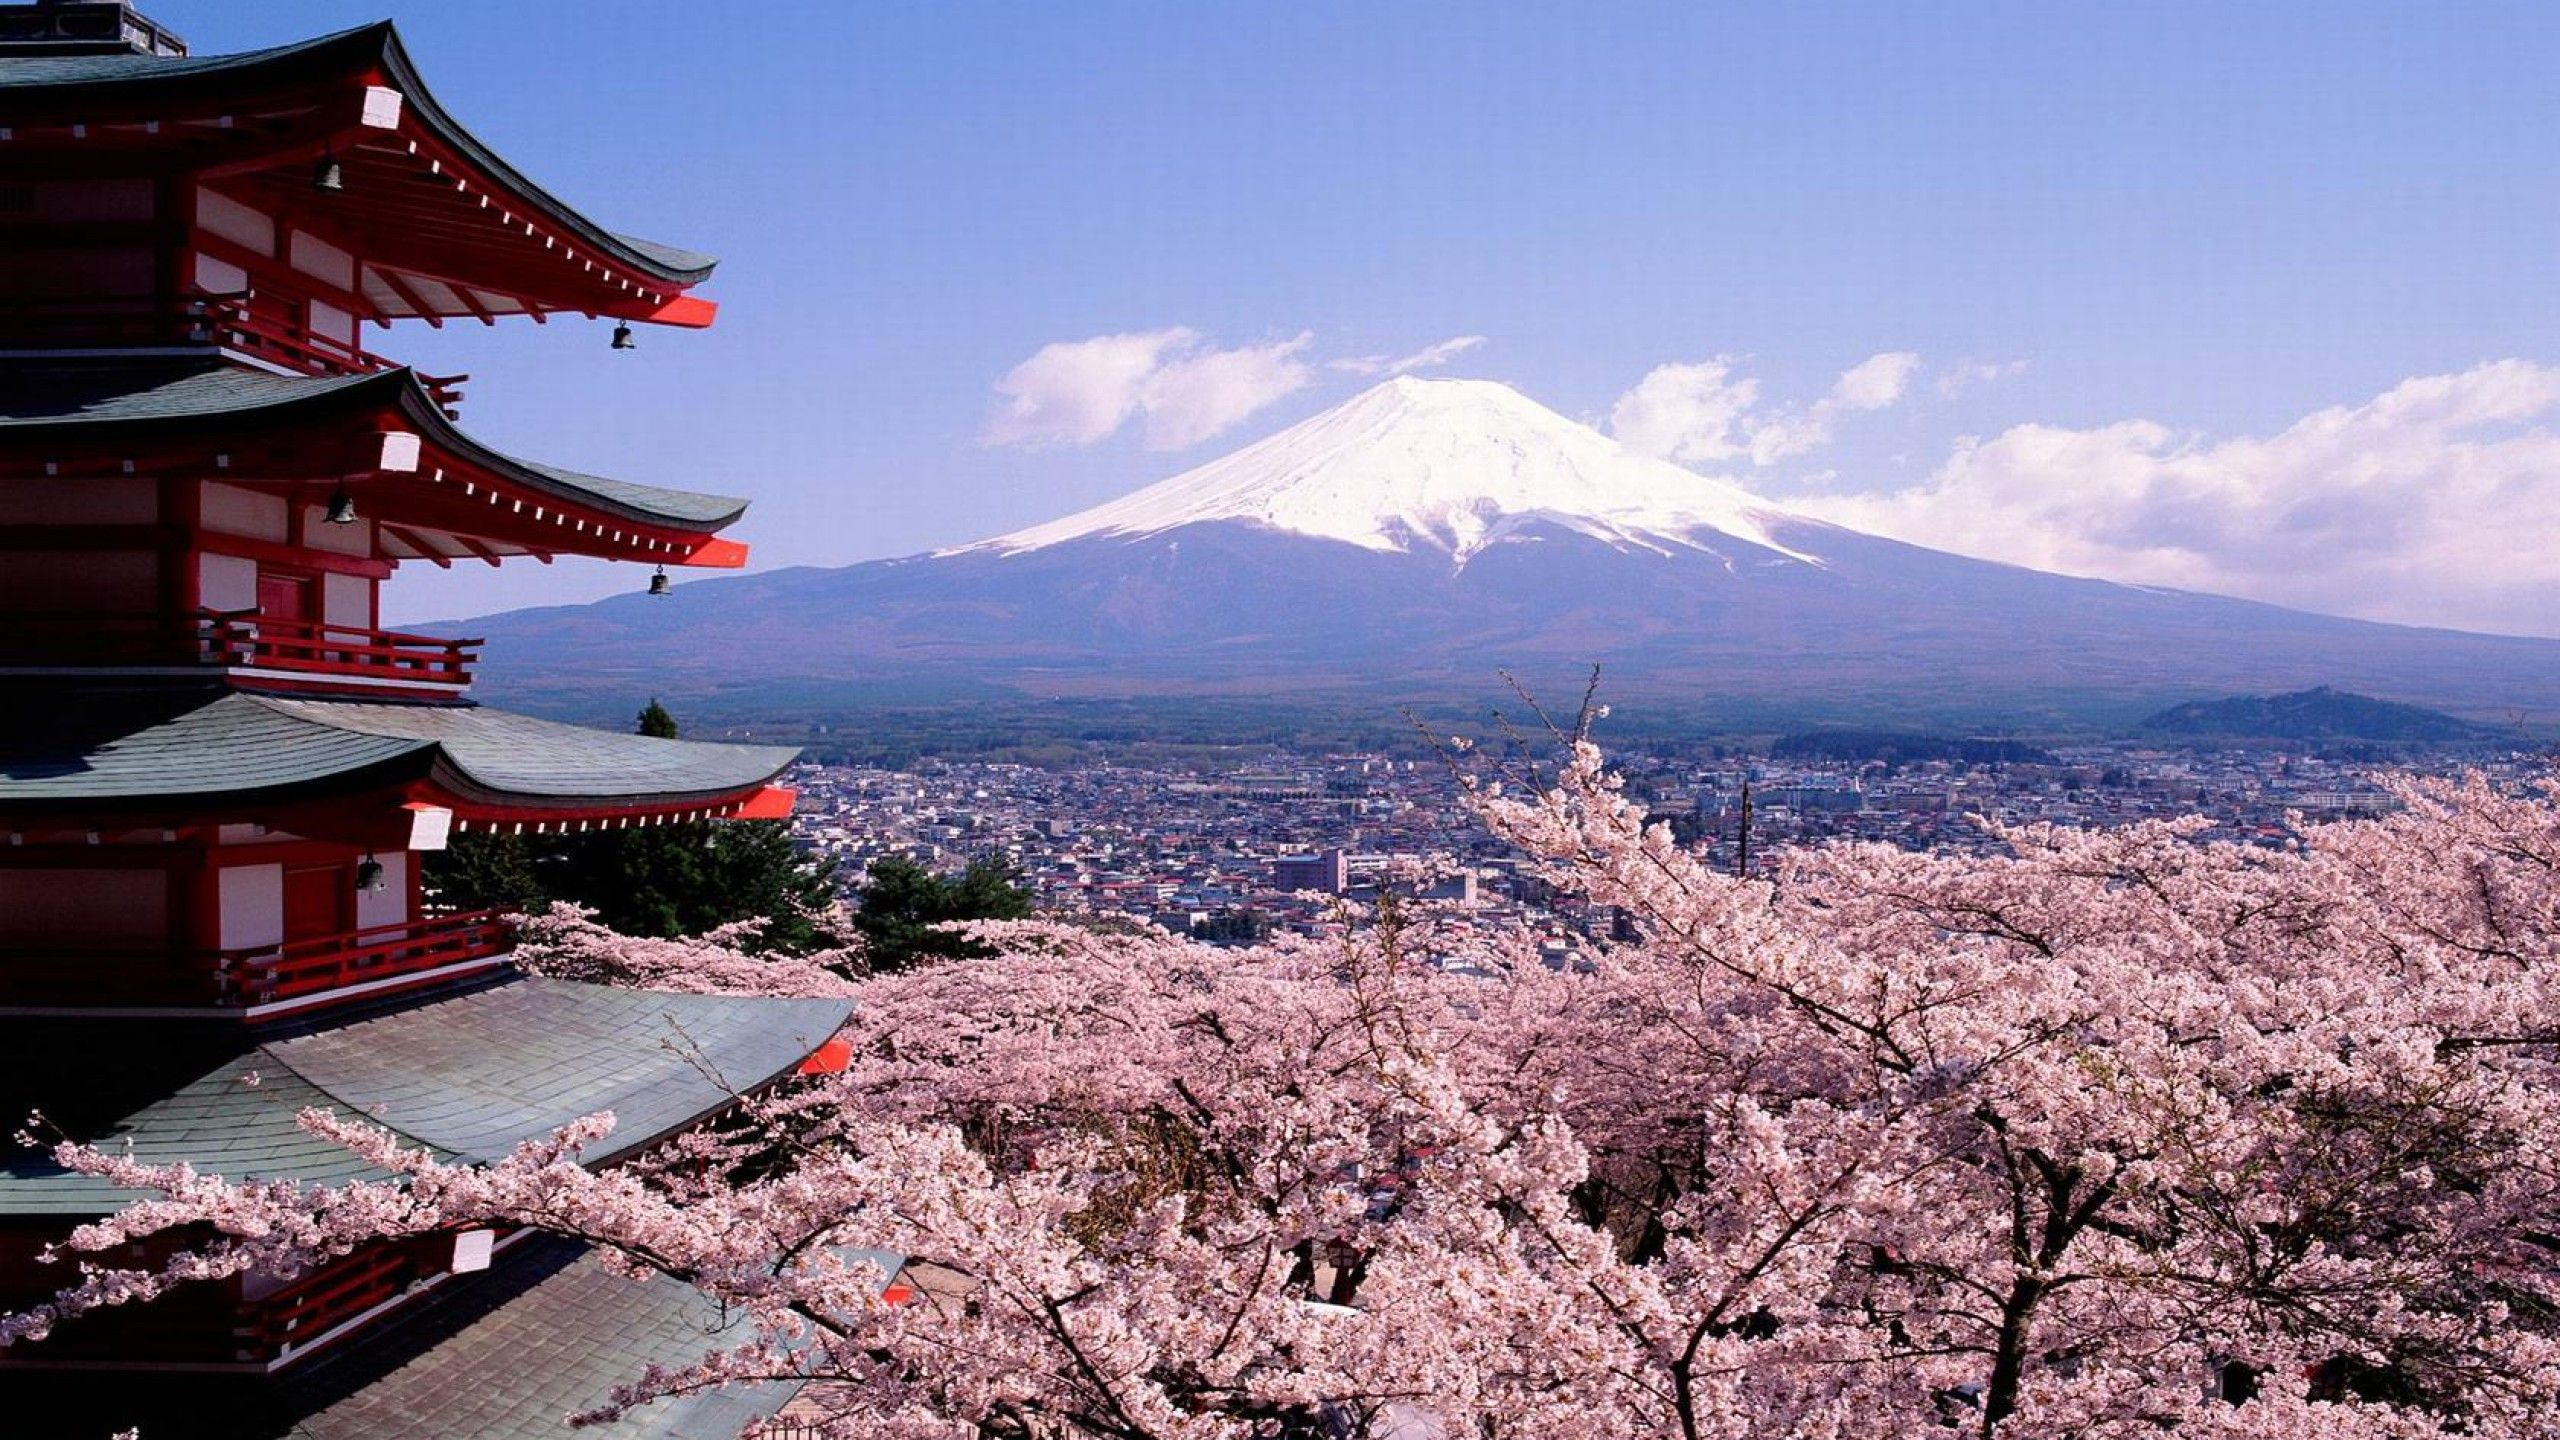 Asia Travel Wallpapers Top Free Asia Travel Backgrounds Wallpaperaccess